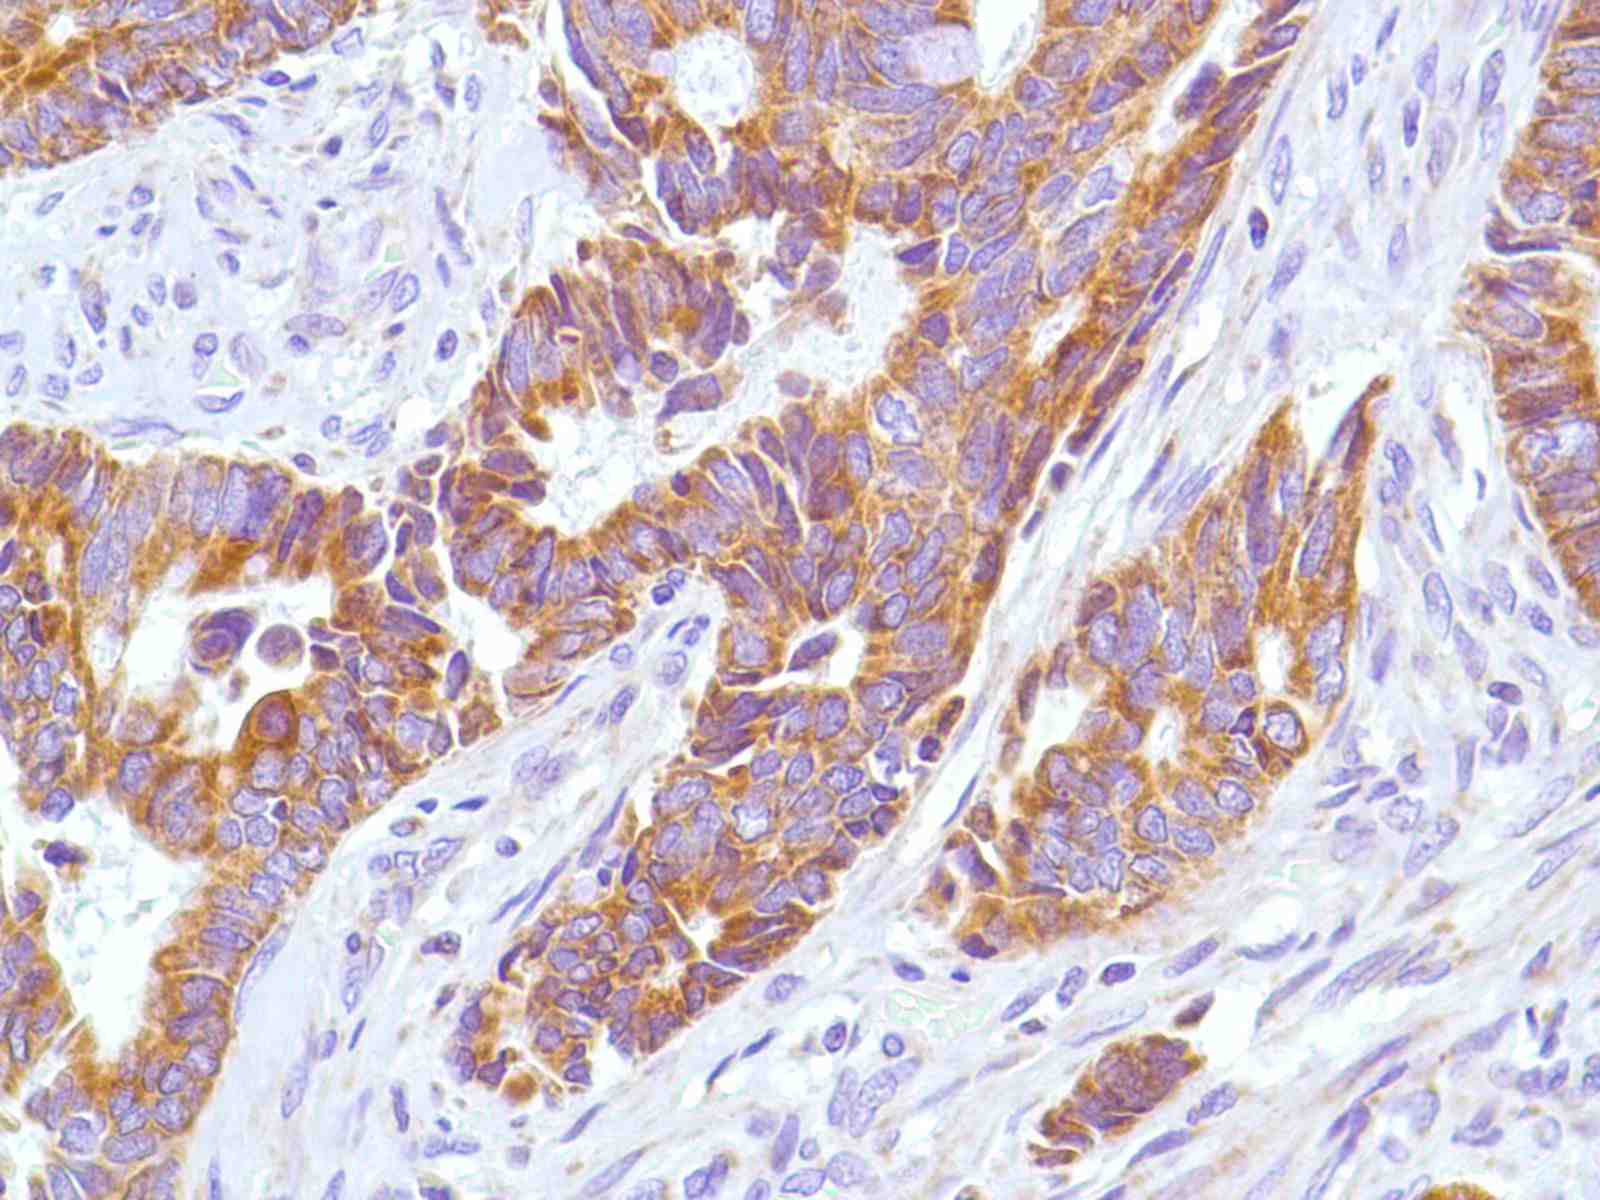 Human Rectal Adenocarcinoma stained with anti-Keratin 6 antibody